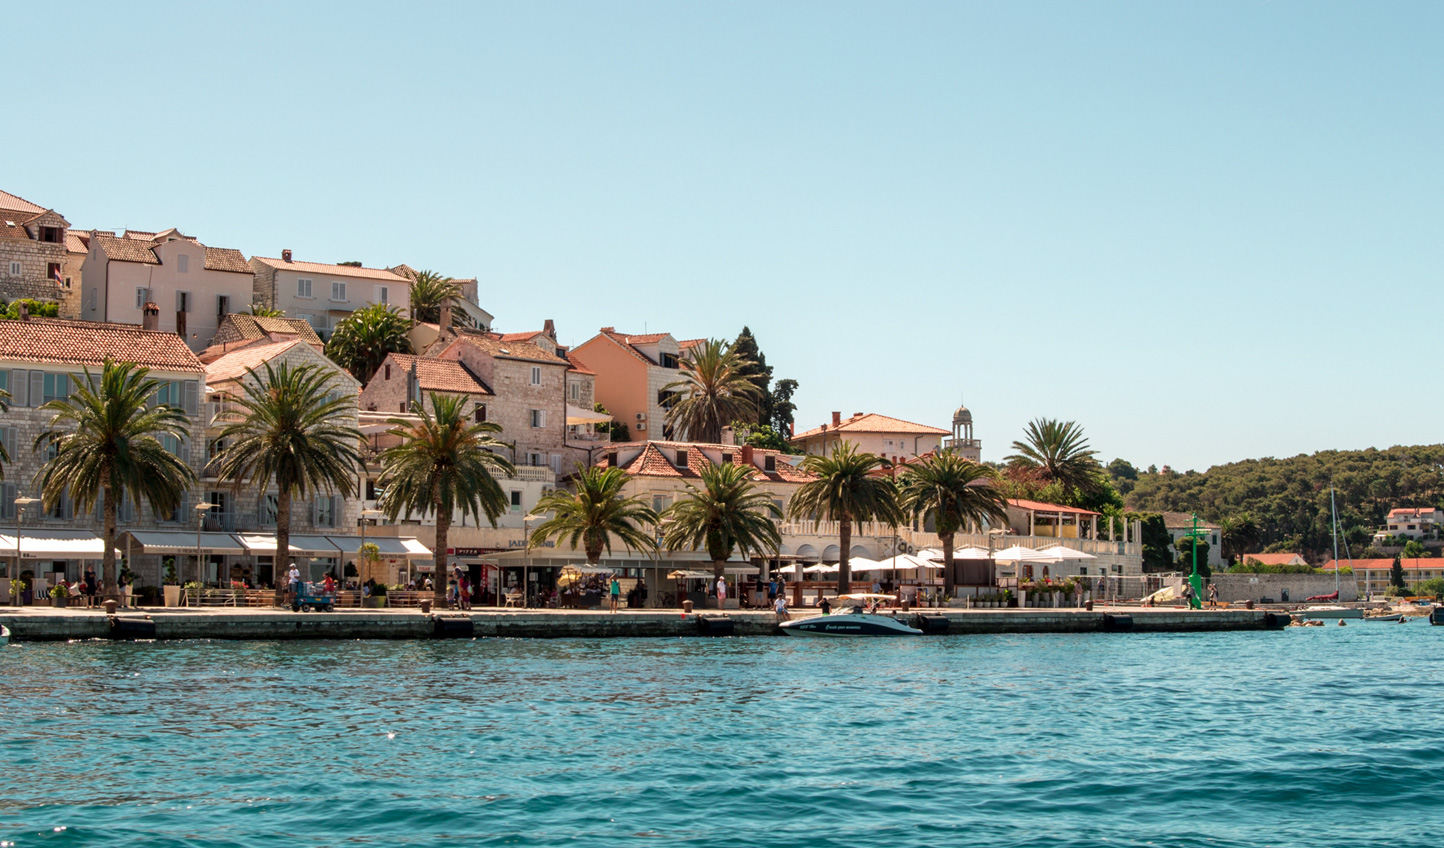 Stroll through sundrenched Hvar